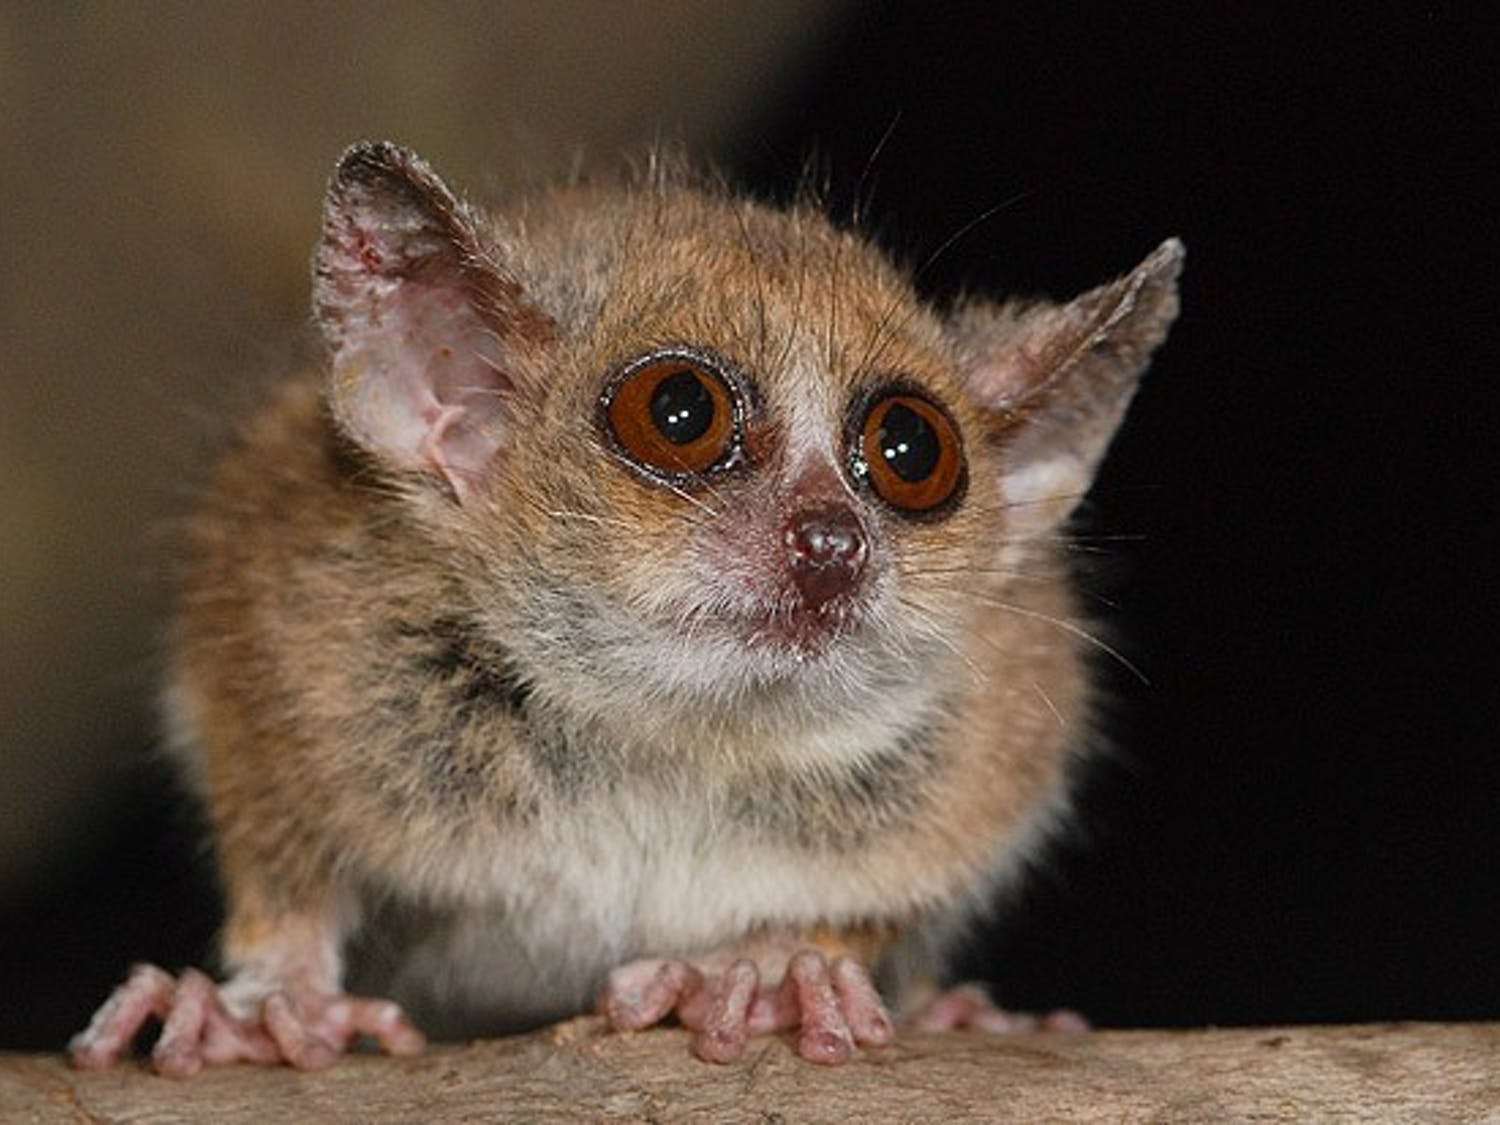 An international team of researchers, including one from the Duke Lemur Center, recently identified two new species of mouse lemurs.